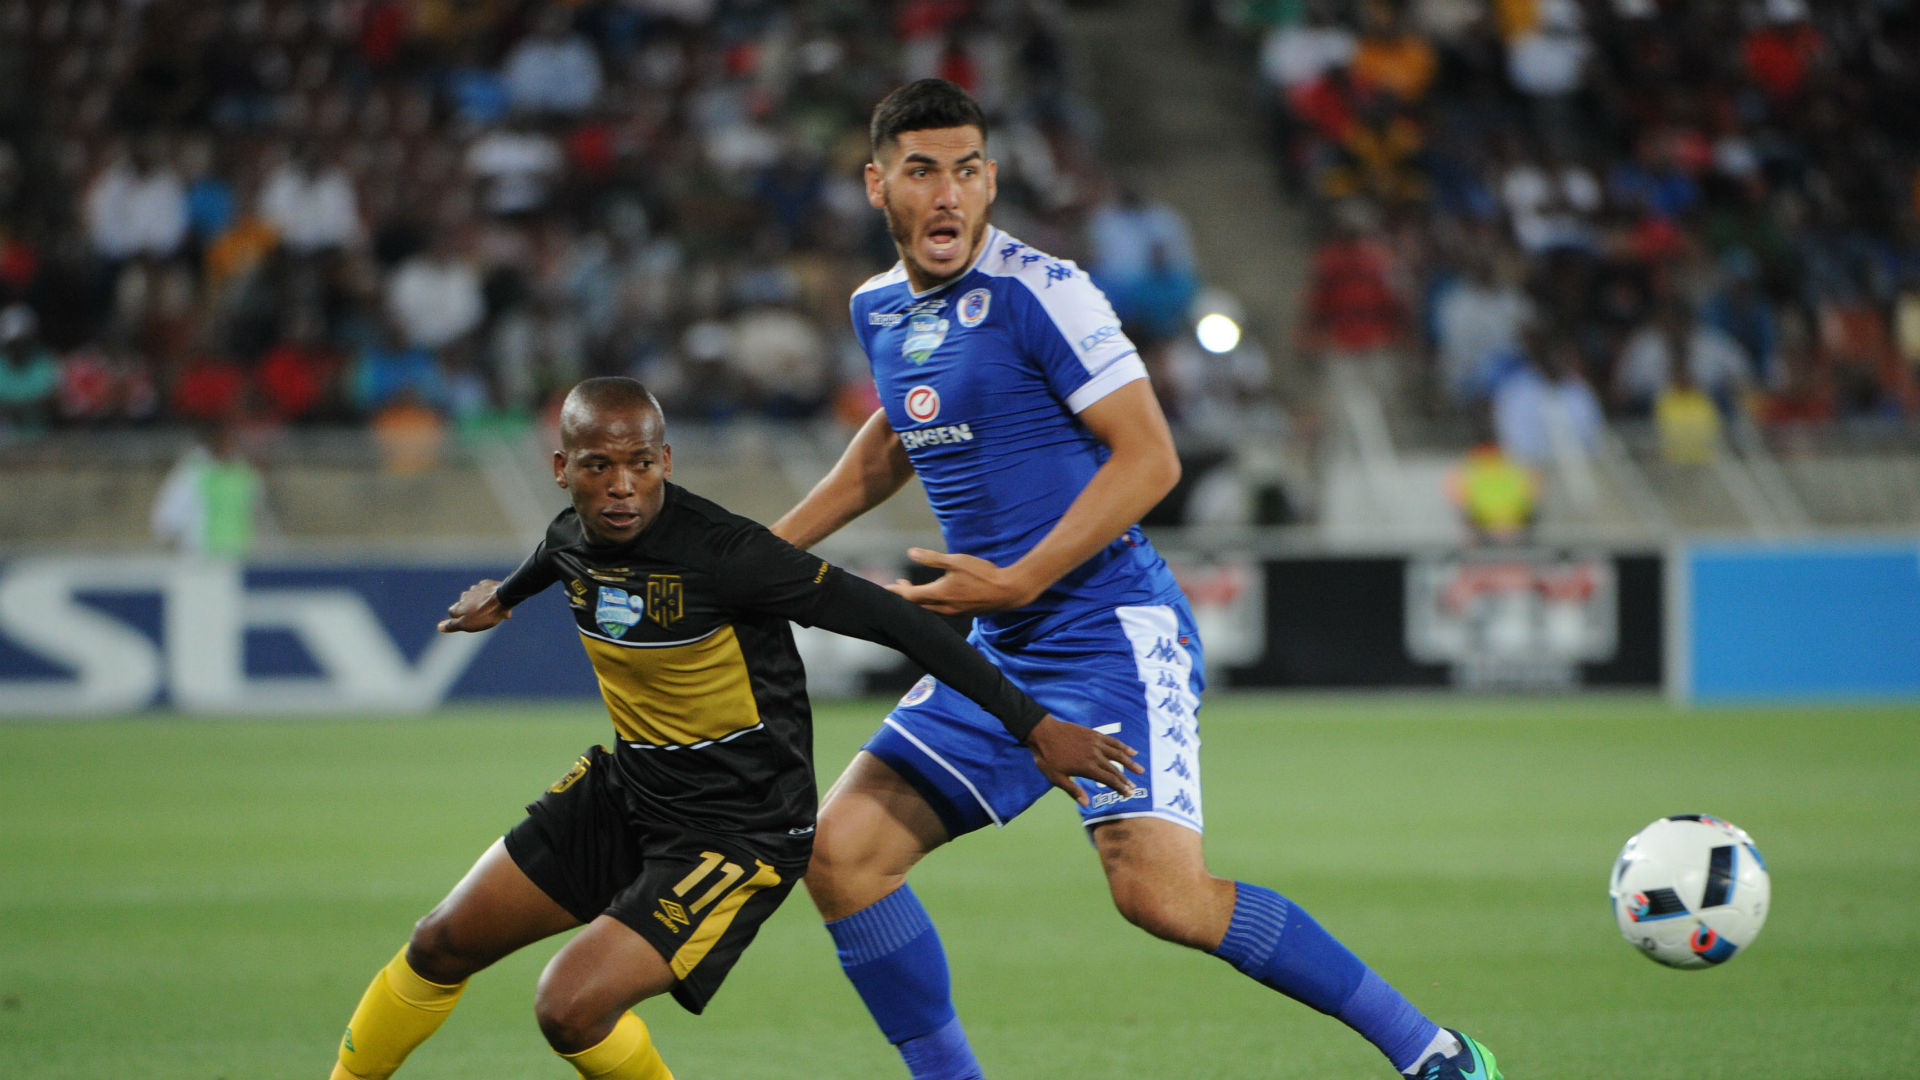 Former SuperSport United defender Michael Boxall signs for Minnesota United